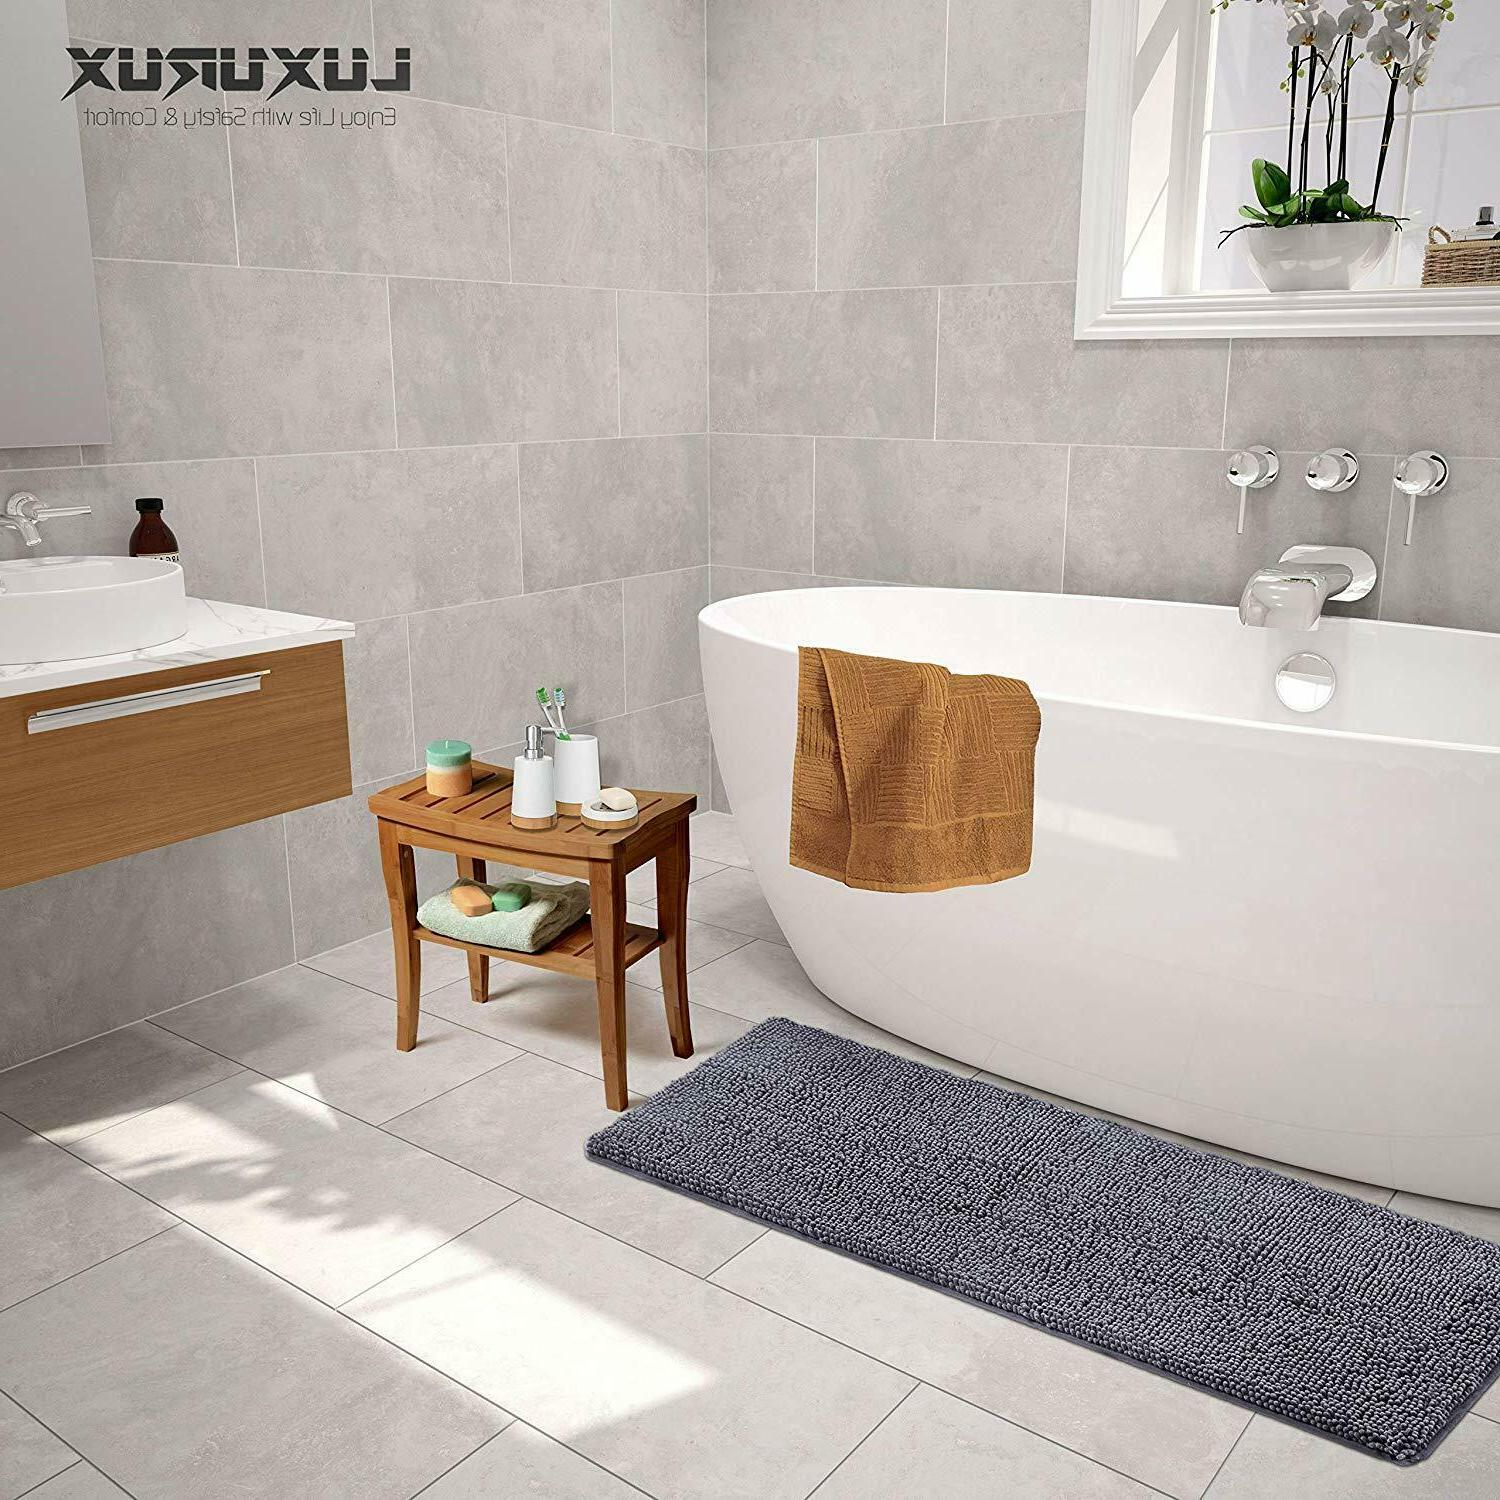 LuxUrux Bath mat-Extra-Soft Plush, Absorbent , Large - Bath